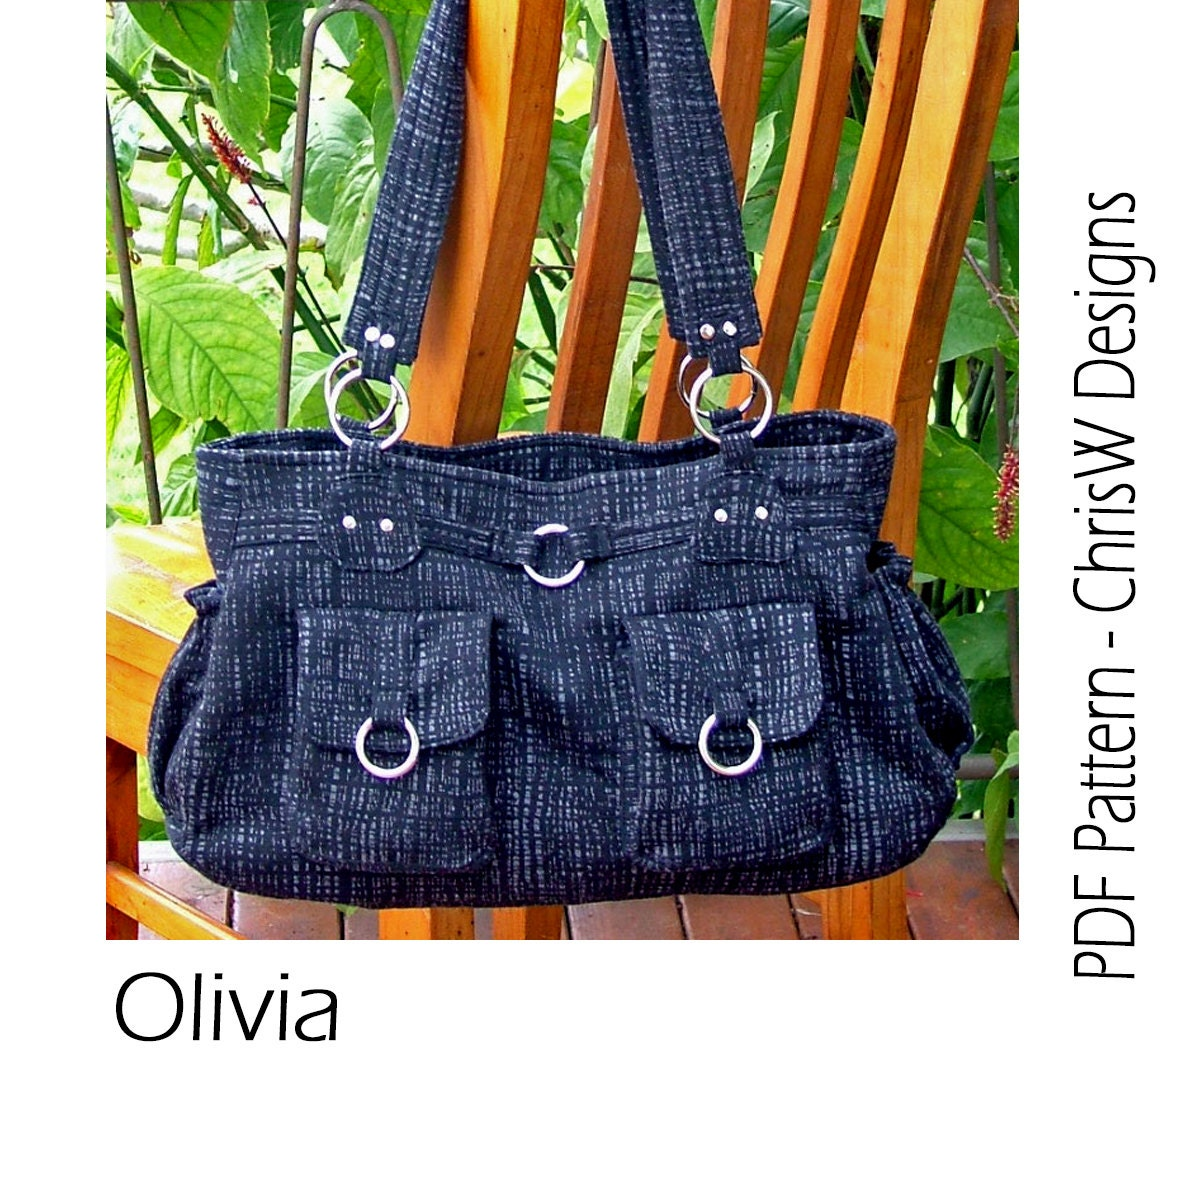 Free Purse Patterns To Download : Purse PDF pattern for a Handbag Olivia bag with by ChrisWDesigns